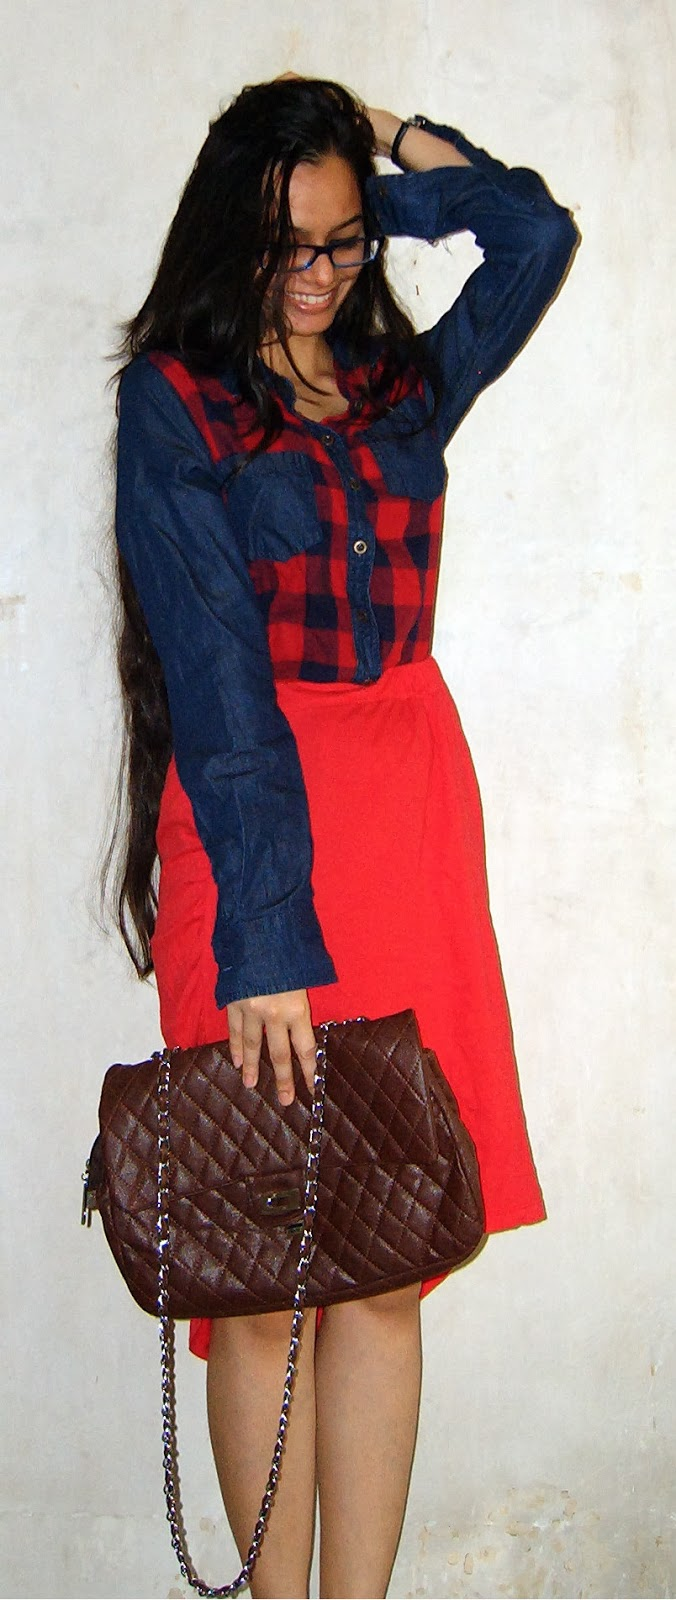 denim shirt, tartan shirt, plaid checkered shirt, red skirt, dipped hem skirt, street shopping, look for less